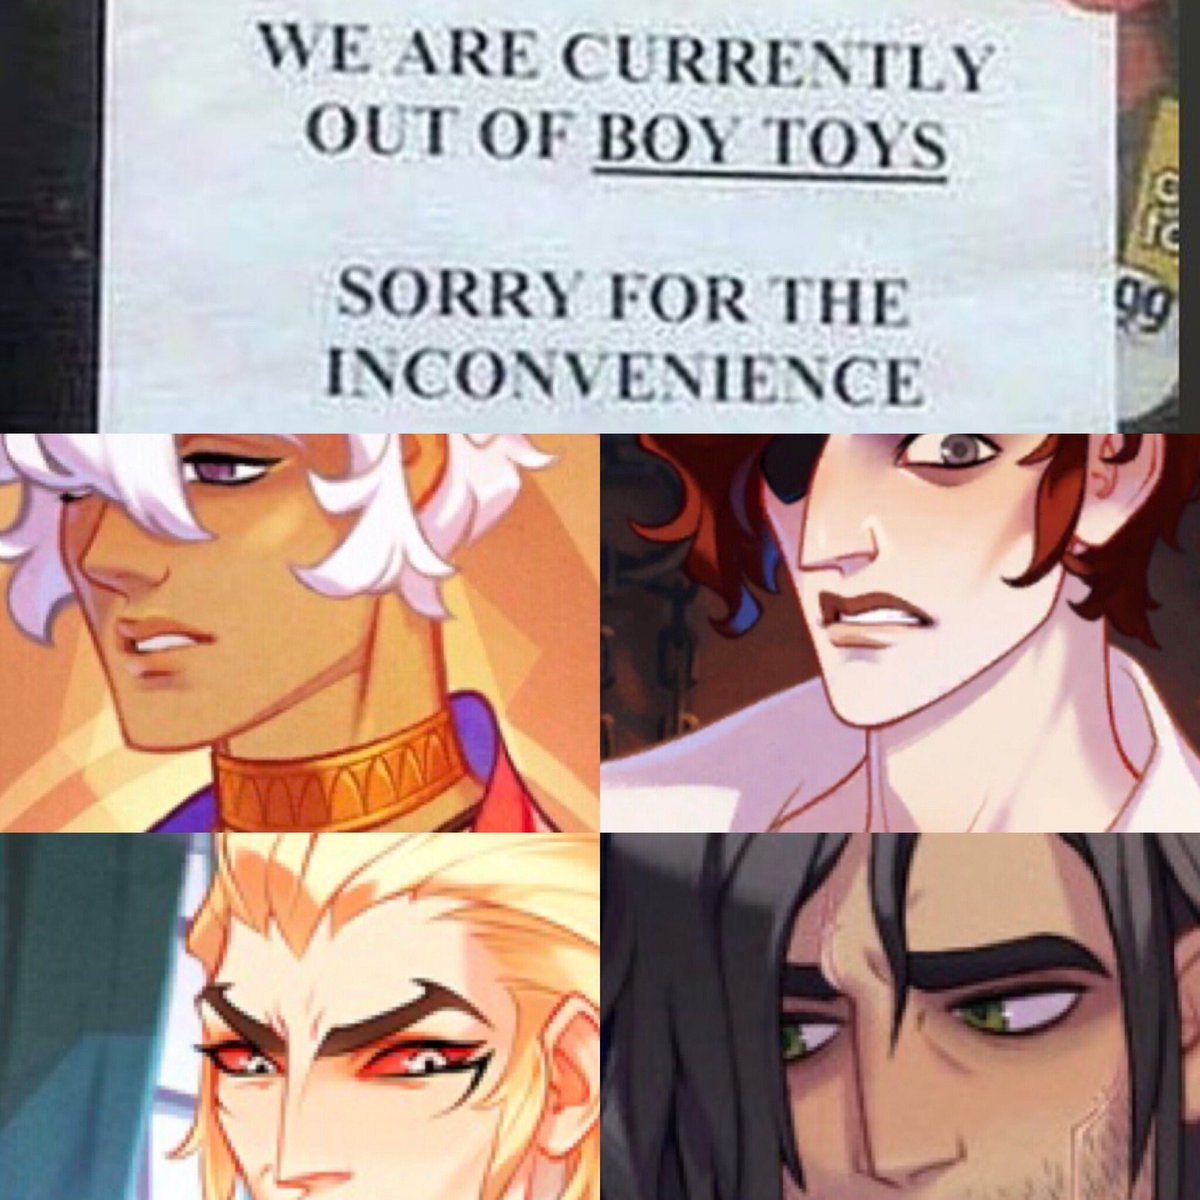 They just received some terrible news #TheArcanaGame #thearcana #asraalnazar #juliandevorak #countlucio #murielthearcanapic.twitter.com/aoIwF3SAzM